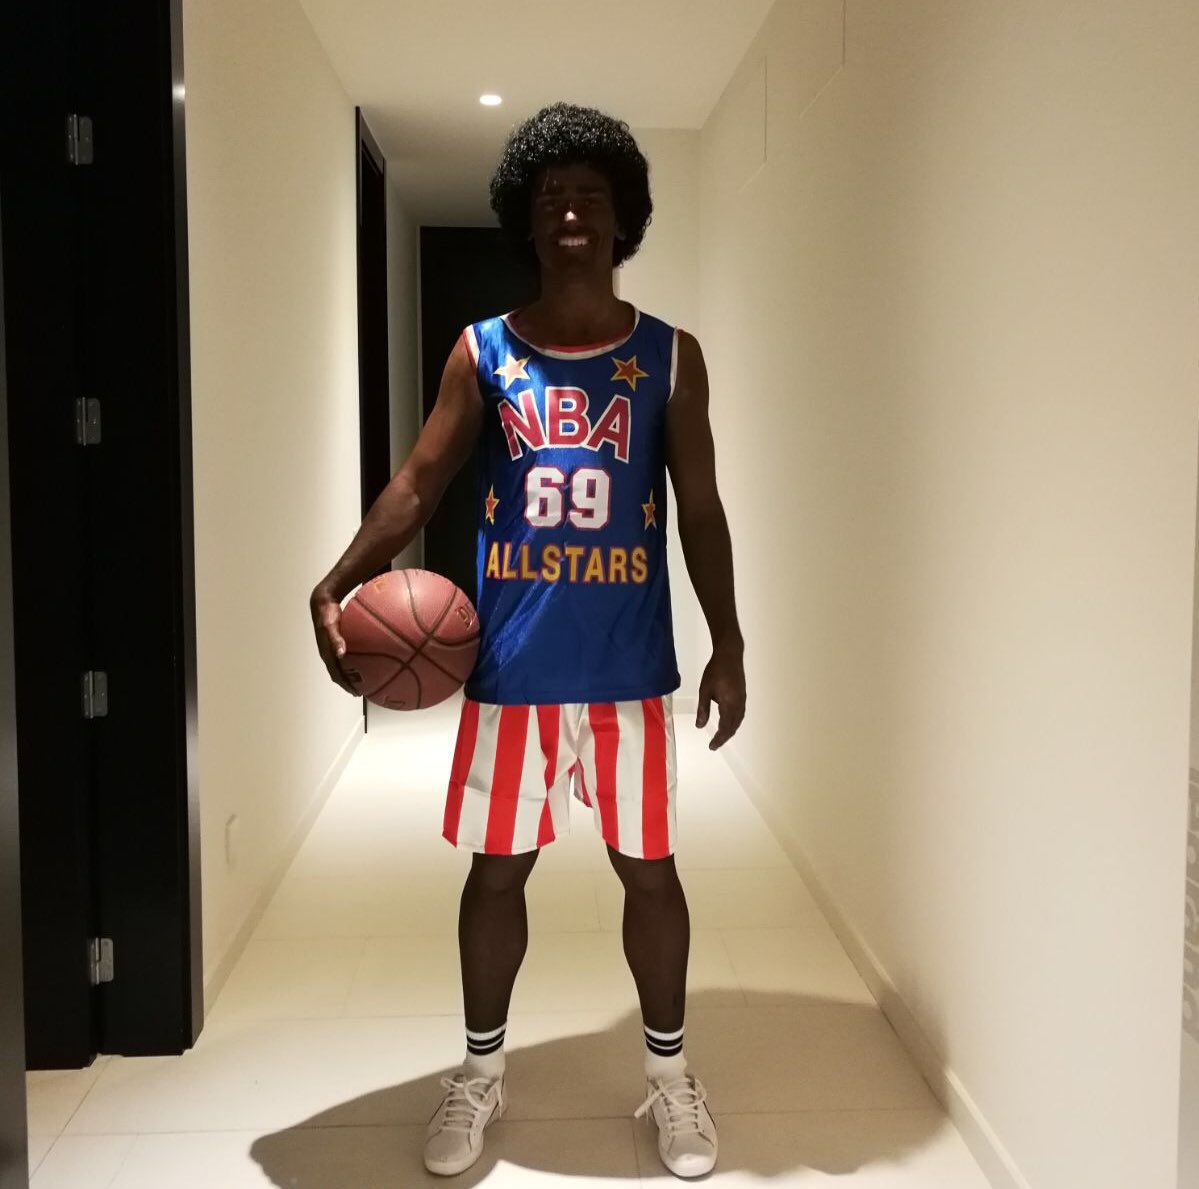 antoine griezmann wore a racist costume to a party - sbnation